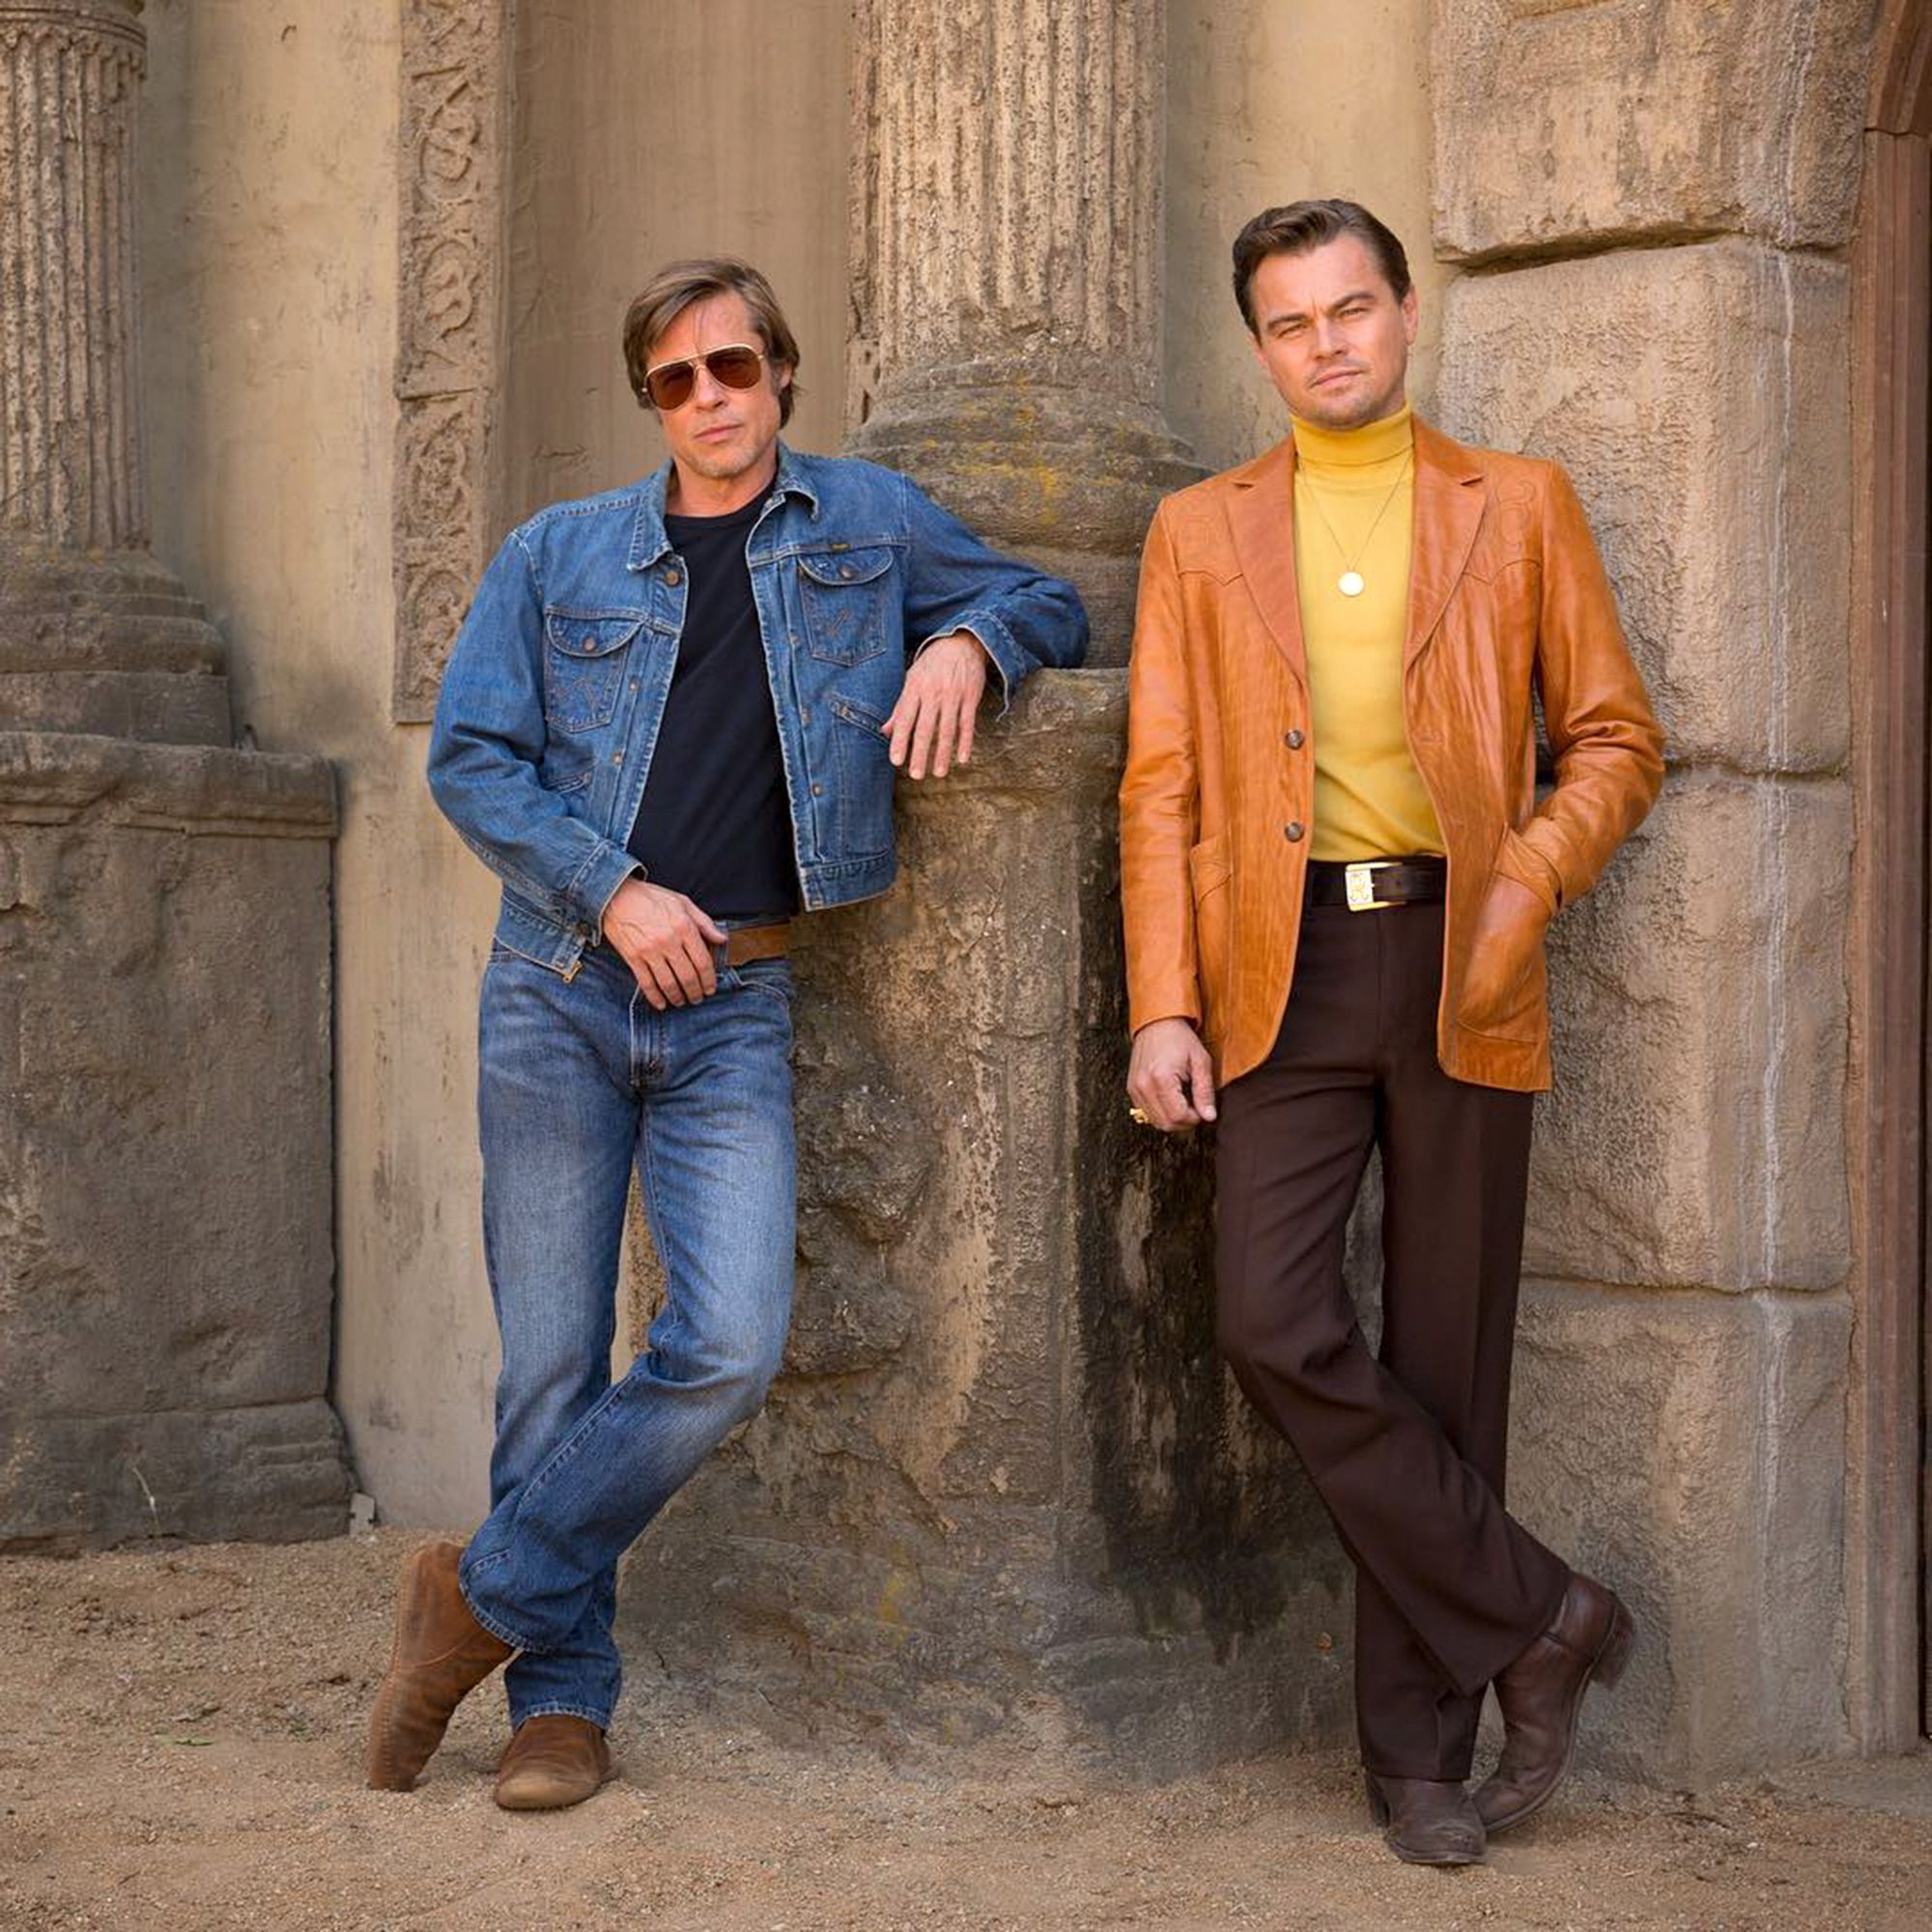 Leonardo Dicaprio Brad Pitt Serve 60s Fashion In First Look At Quentin Tarantino S Once Upon A Time In Hollywood Leonardo Dicaprio Brad Pitt Hollywood